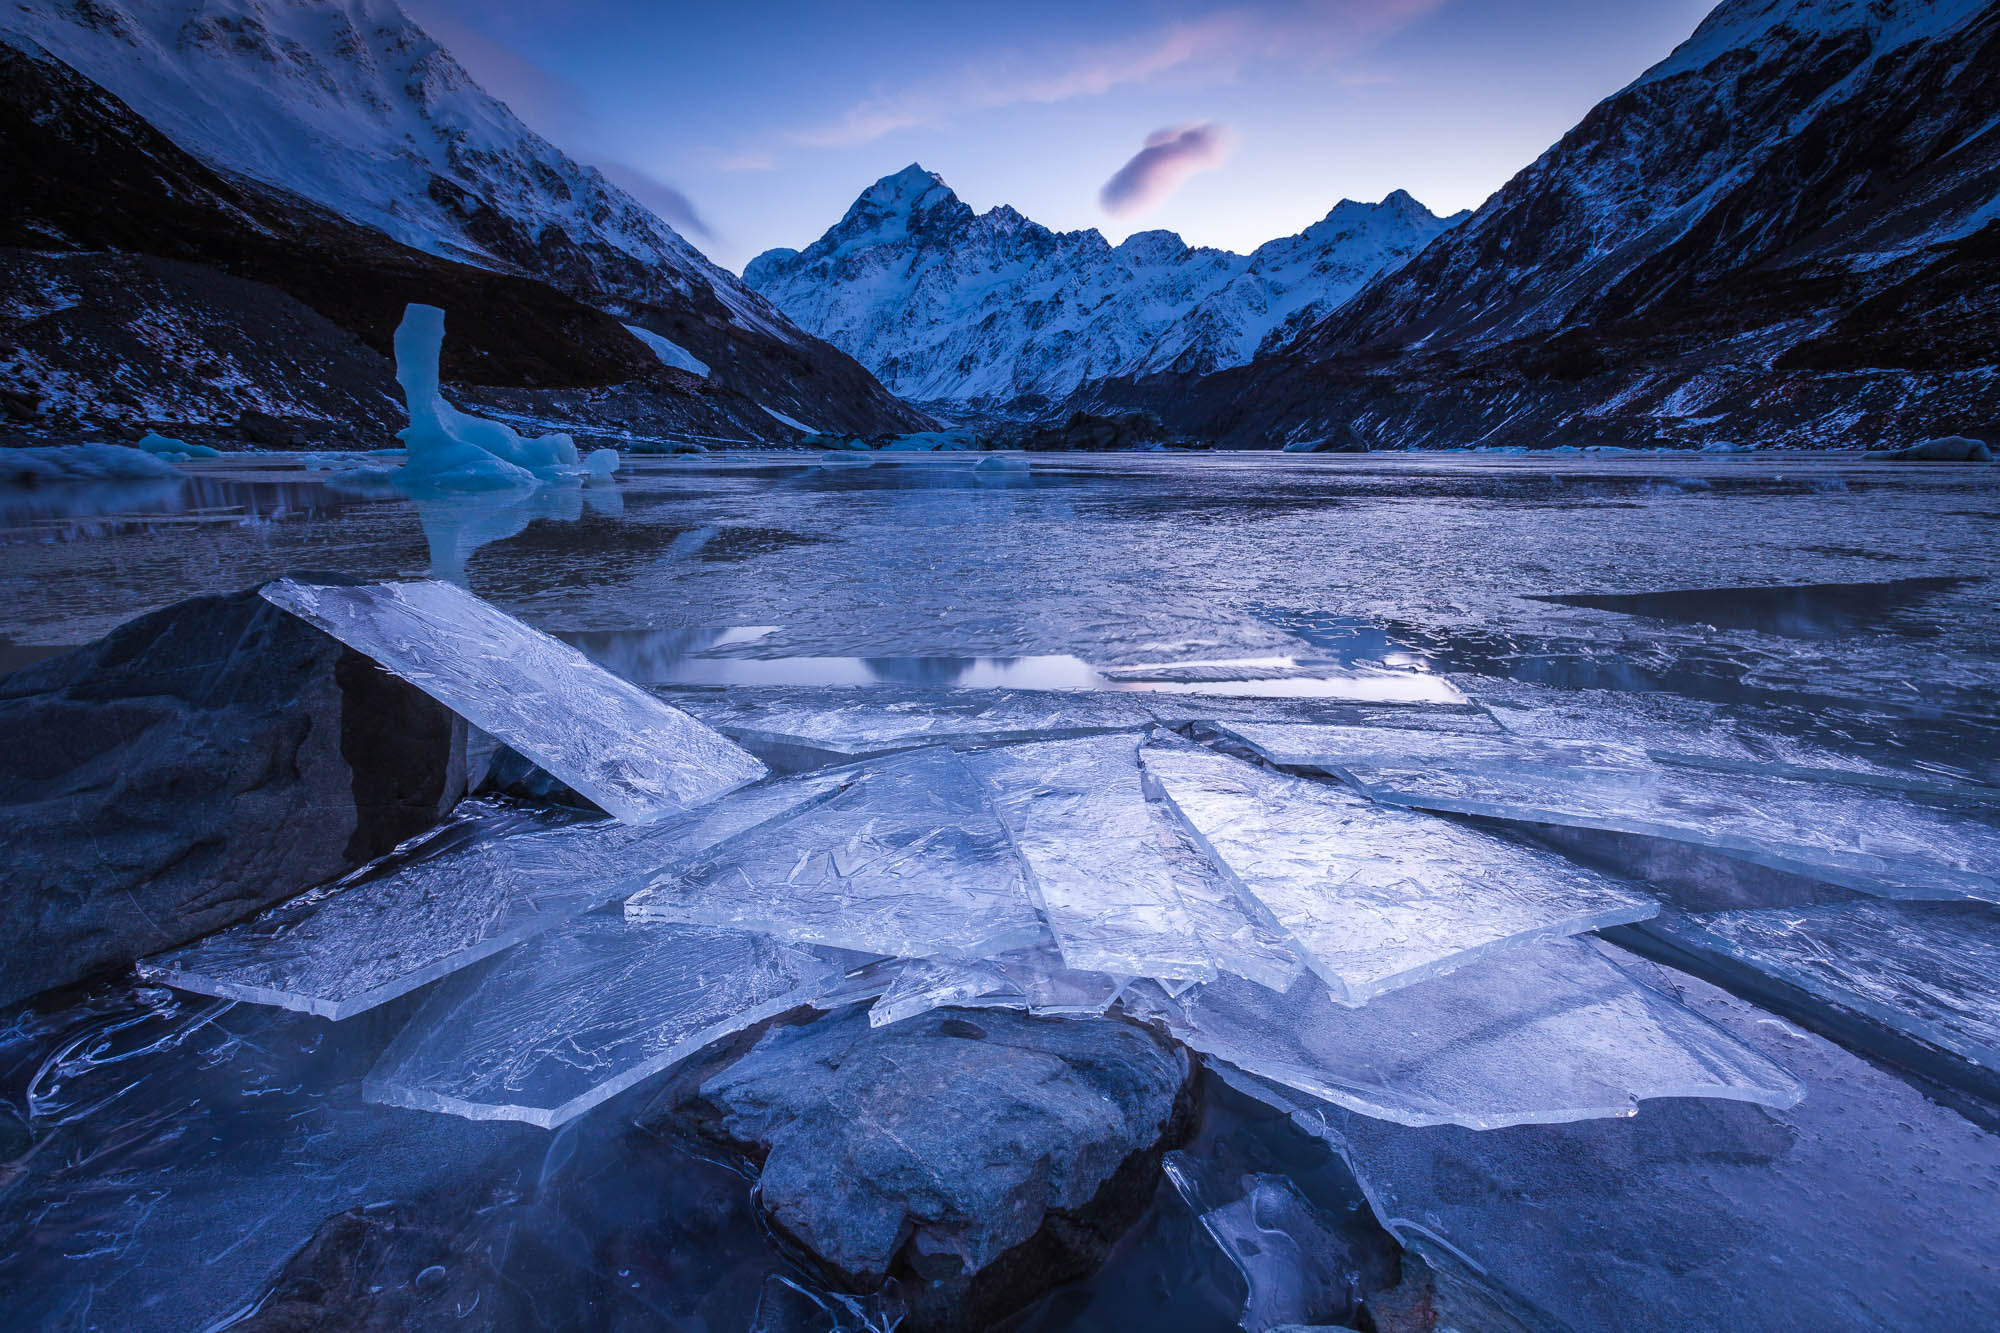 Broken ice, piled by the wind and waves. I spent the evening camped on the edge of this lake in sub zero conditions with the lake calm and frozen, The wind turned NW (warm & gusty) during the night and  broke the ice, throwing great sheets onto the shore. Hooker Glacier terminal lake and Aoraki Mount Cook. Hooker Valley, Aoraki Mount Cook National Park.